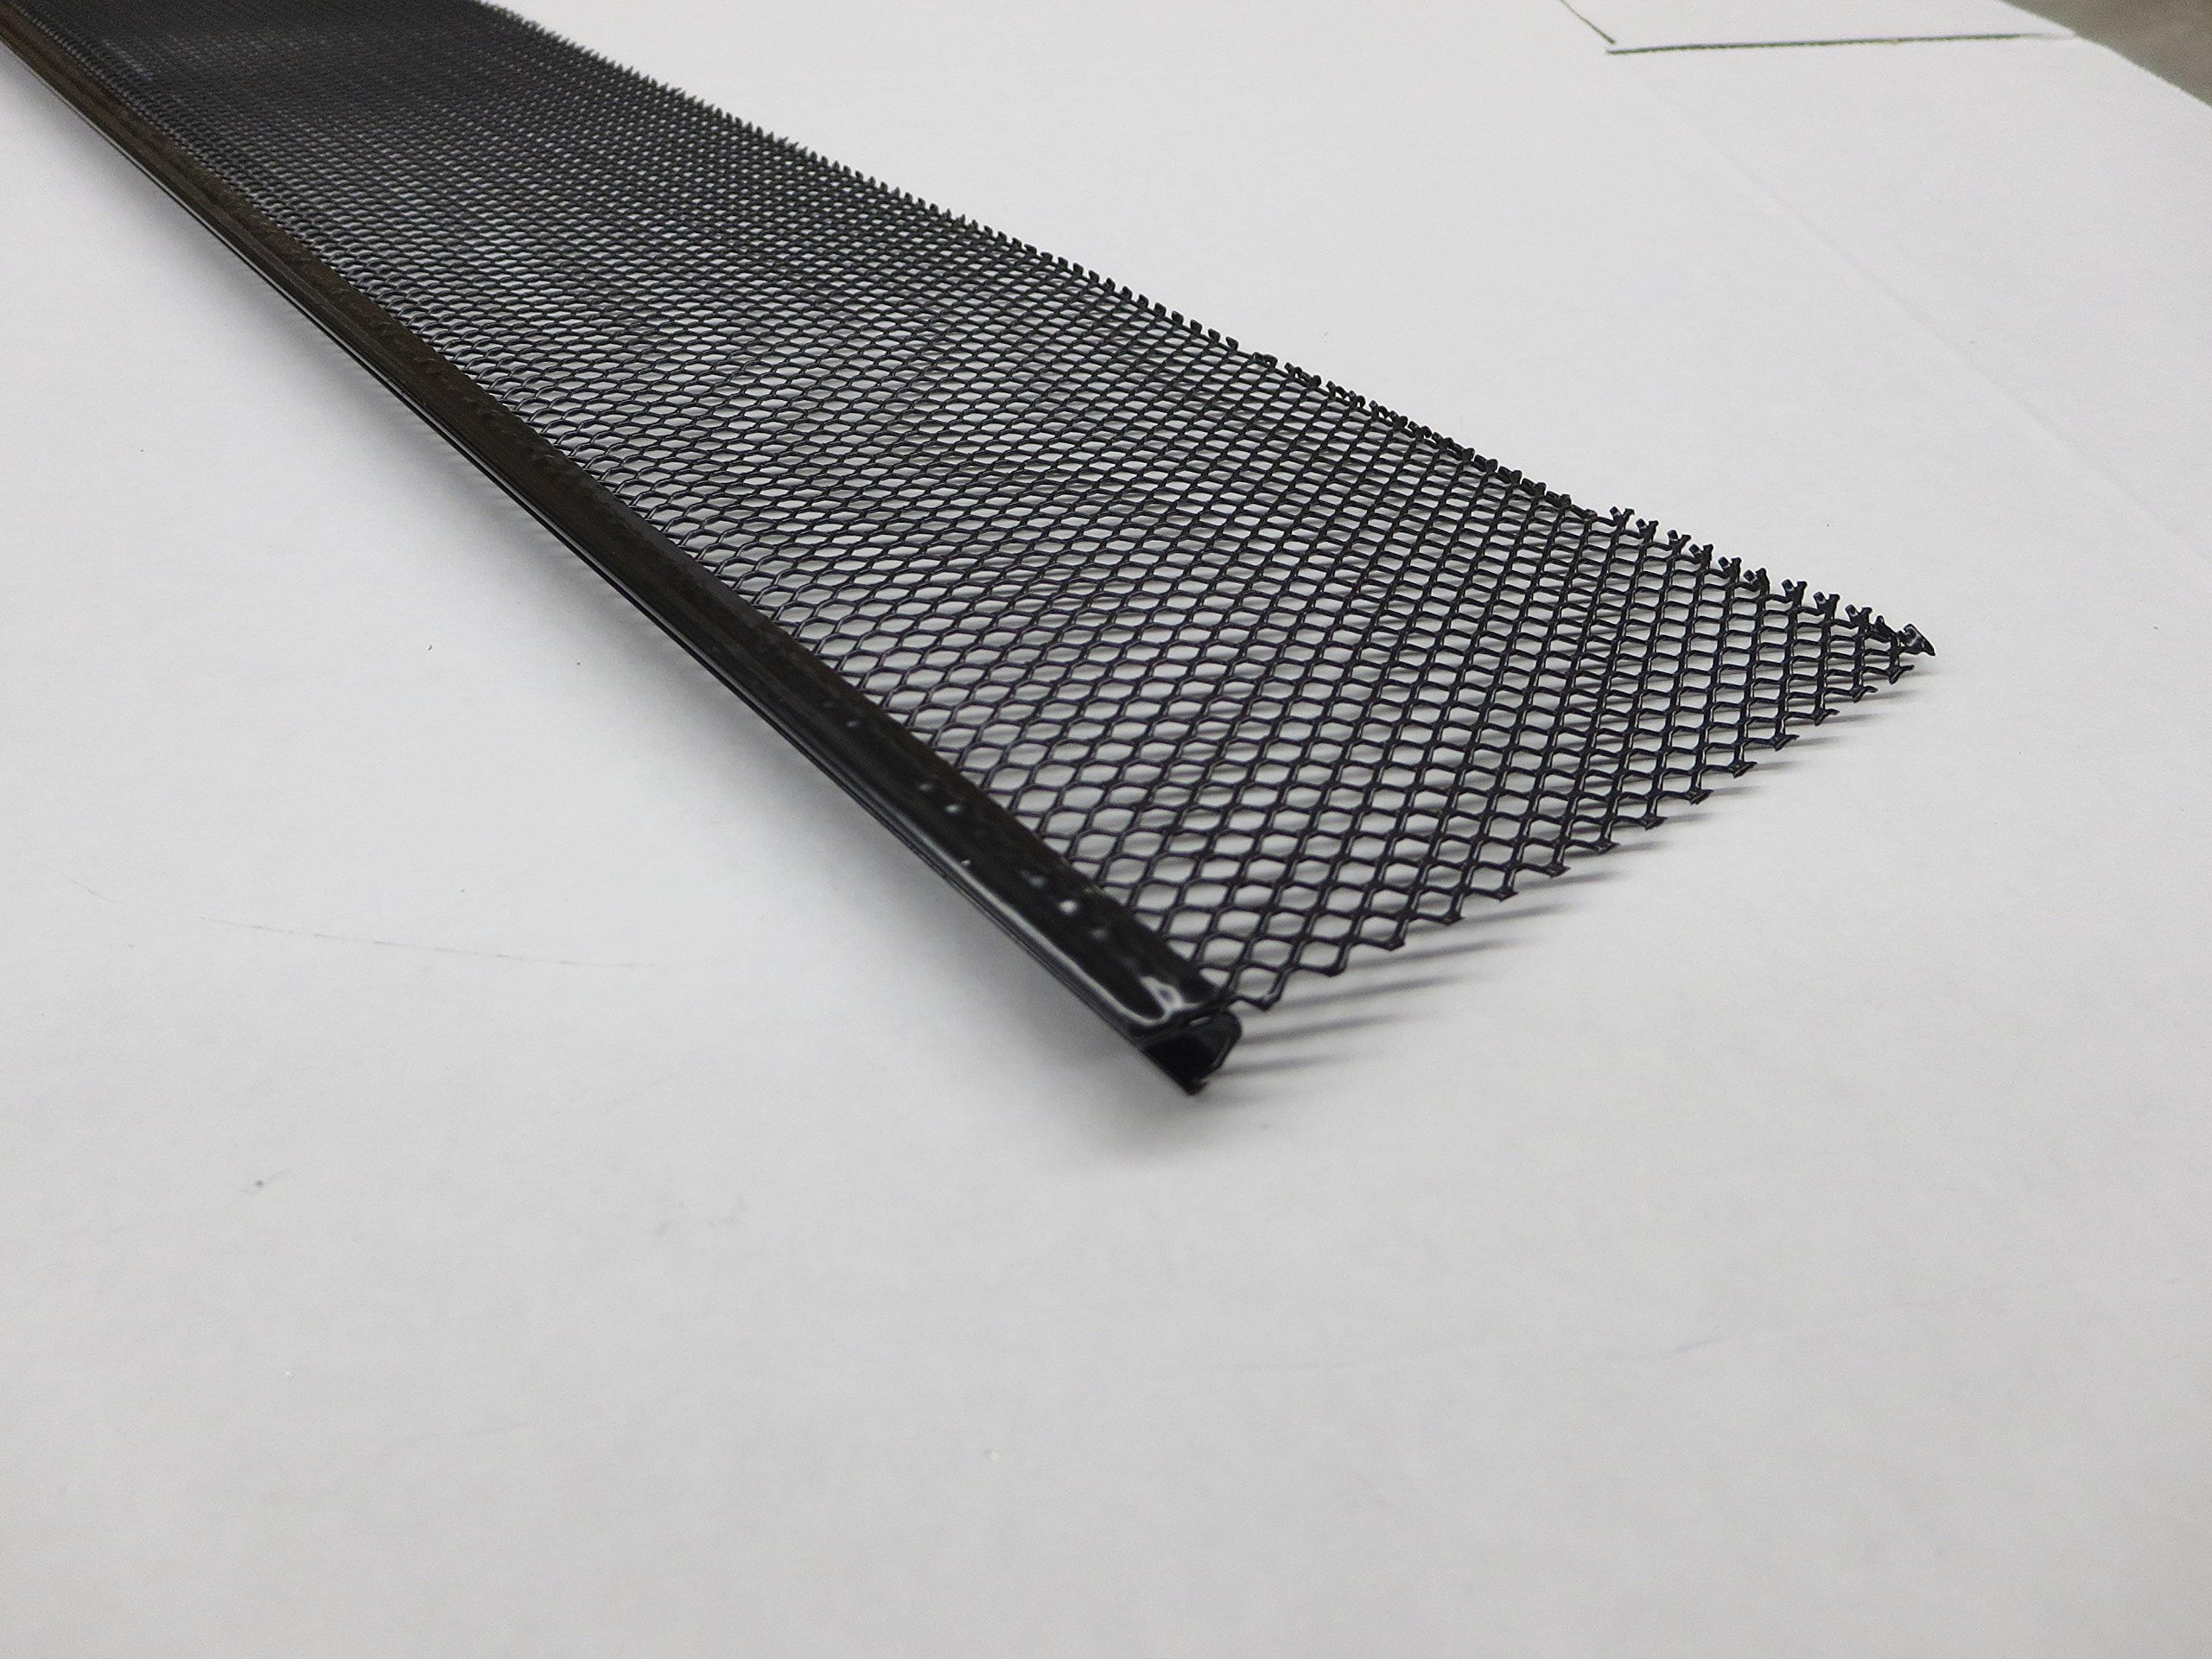 Aluminum Small Hole Drop In Leaf Guard for Gutters (6'', BLACK CASE)